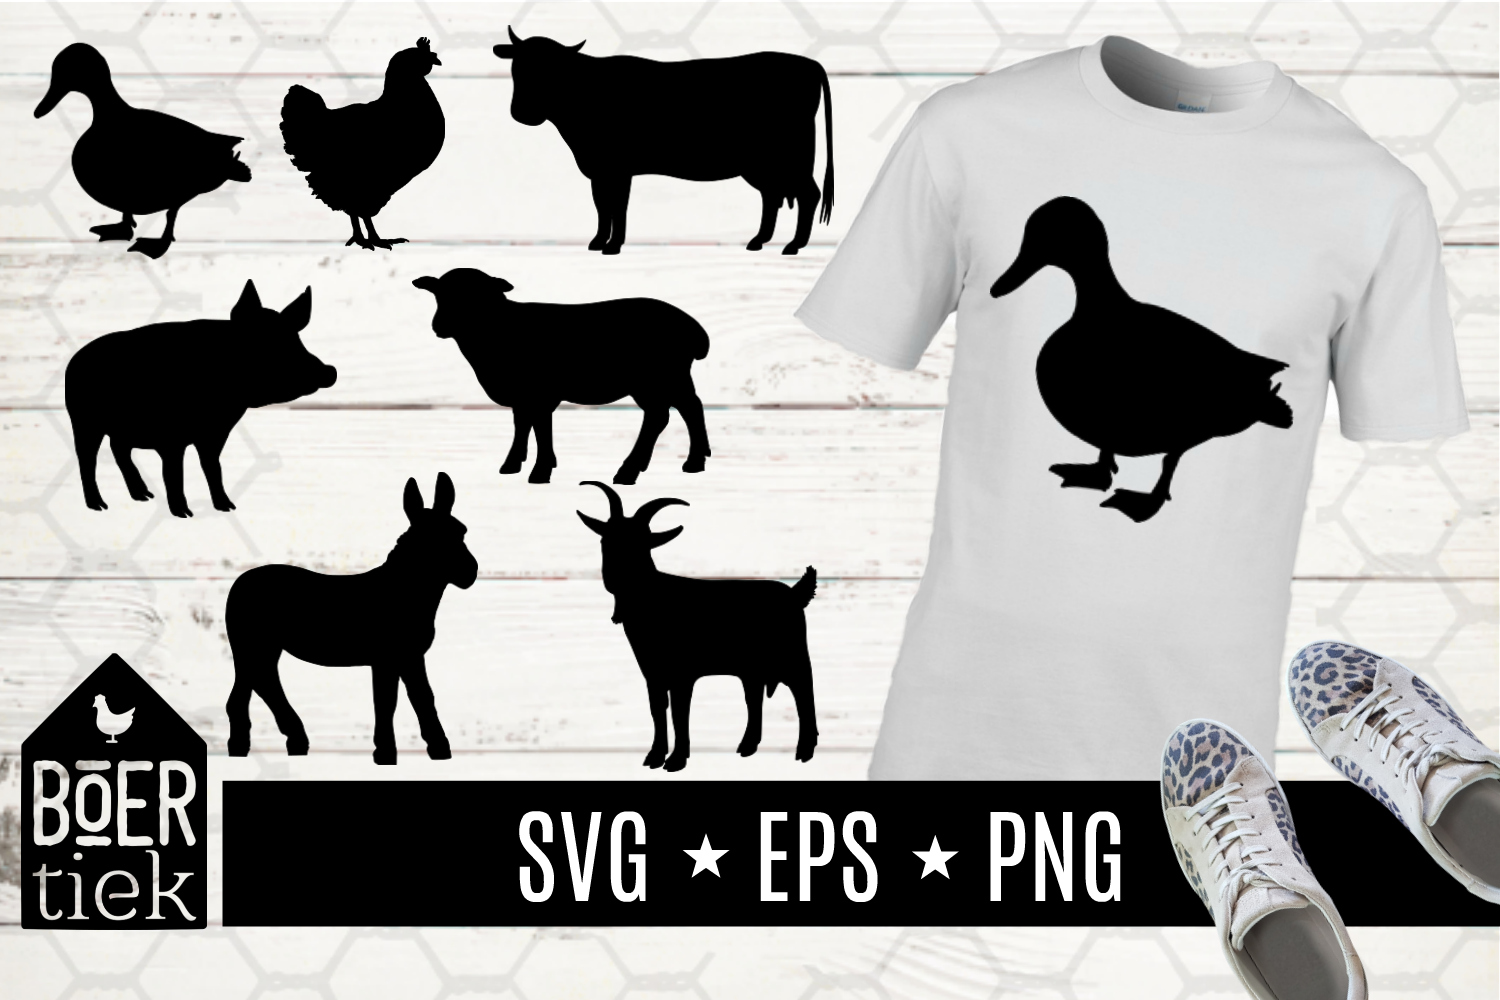 Download Free Farm Animals Graphic By Boertiek Creative Fabrica for Cricut Explore, Silhouette and other cutting machines.